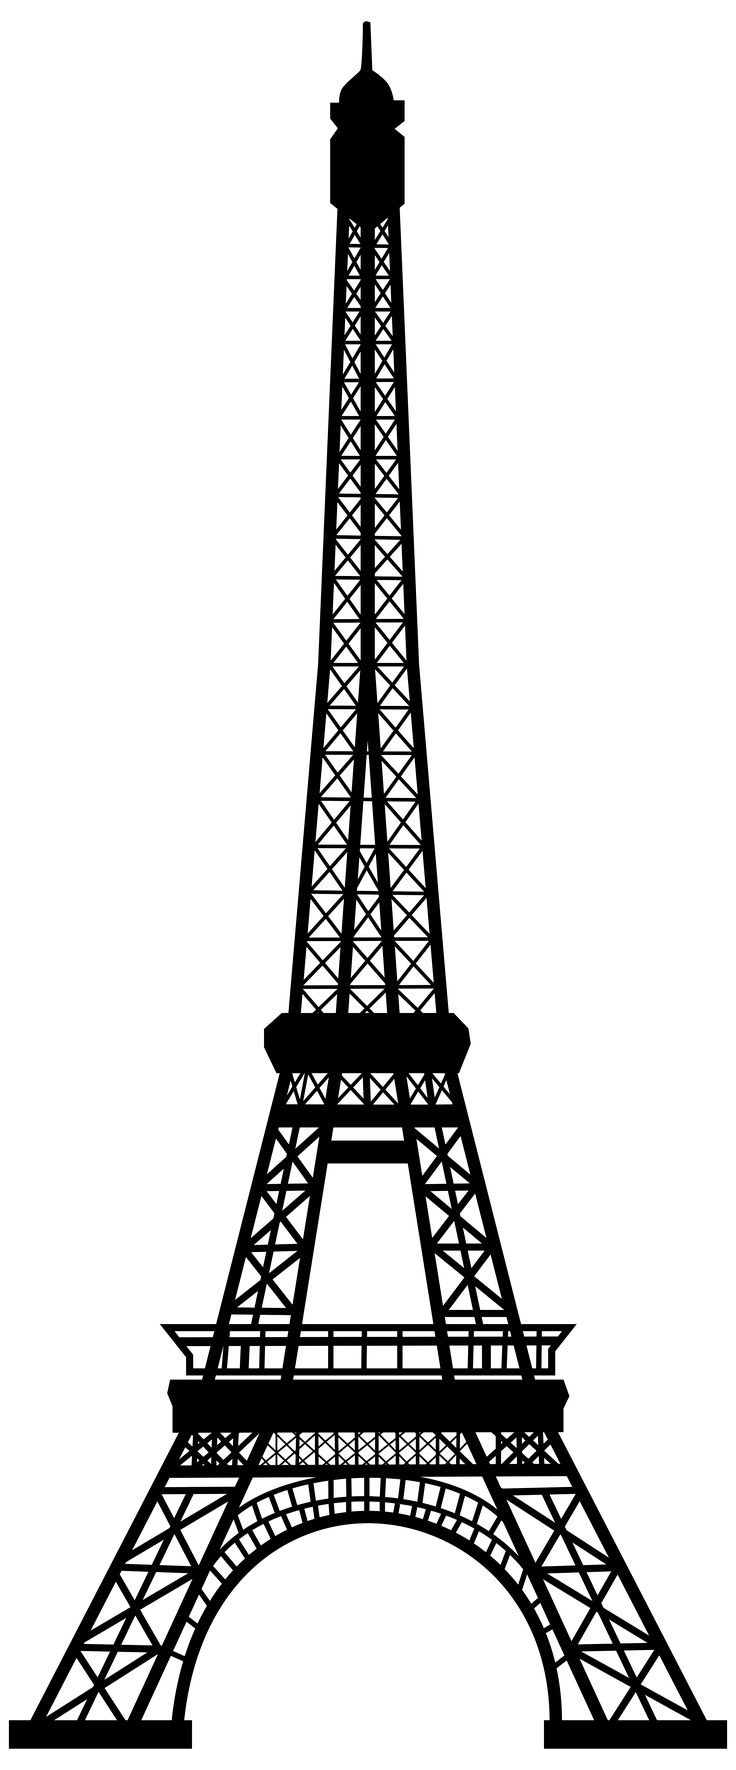 how to draw the eiffel tower cartoon download eiffel tower cartoon drawing clipart eiffel the to draw how cartoon eiffel tower